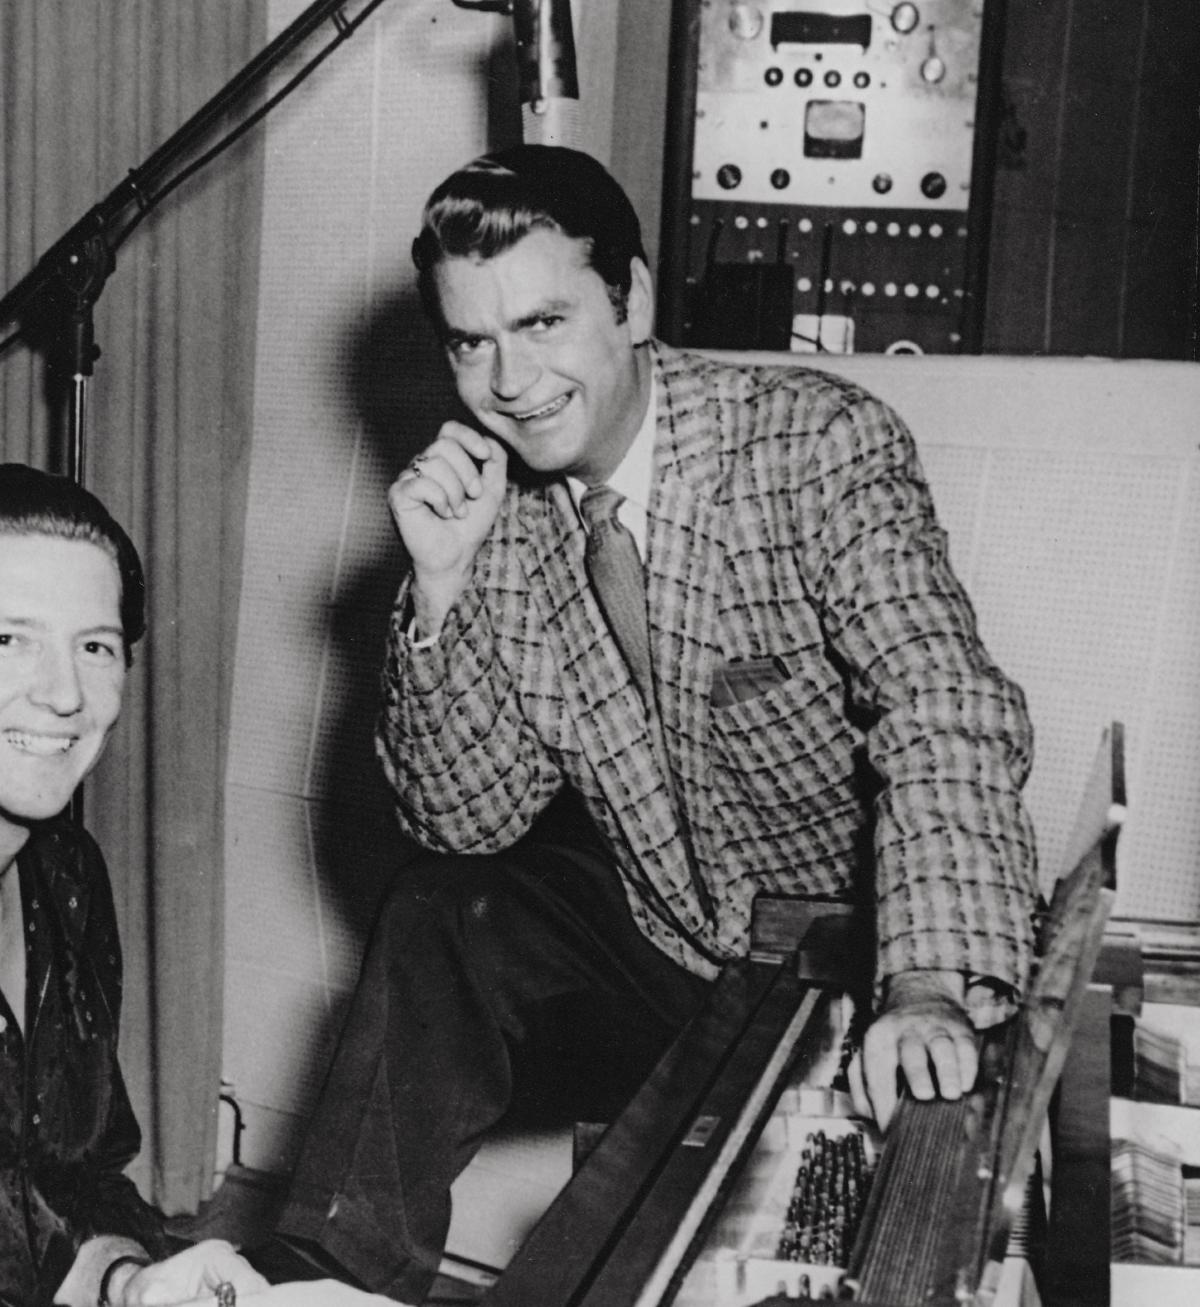 Sam Phillips in a checkered suit, resting his chin on his hand